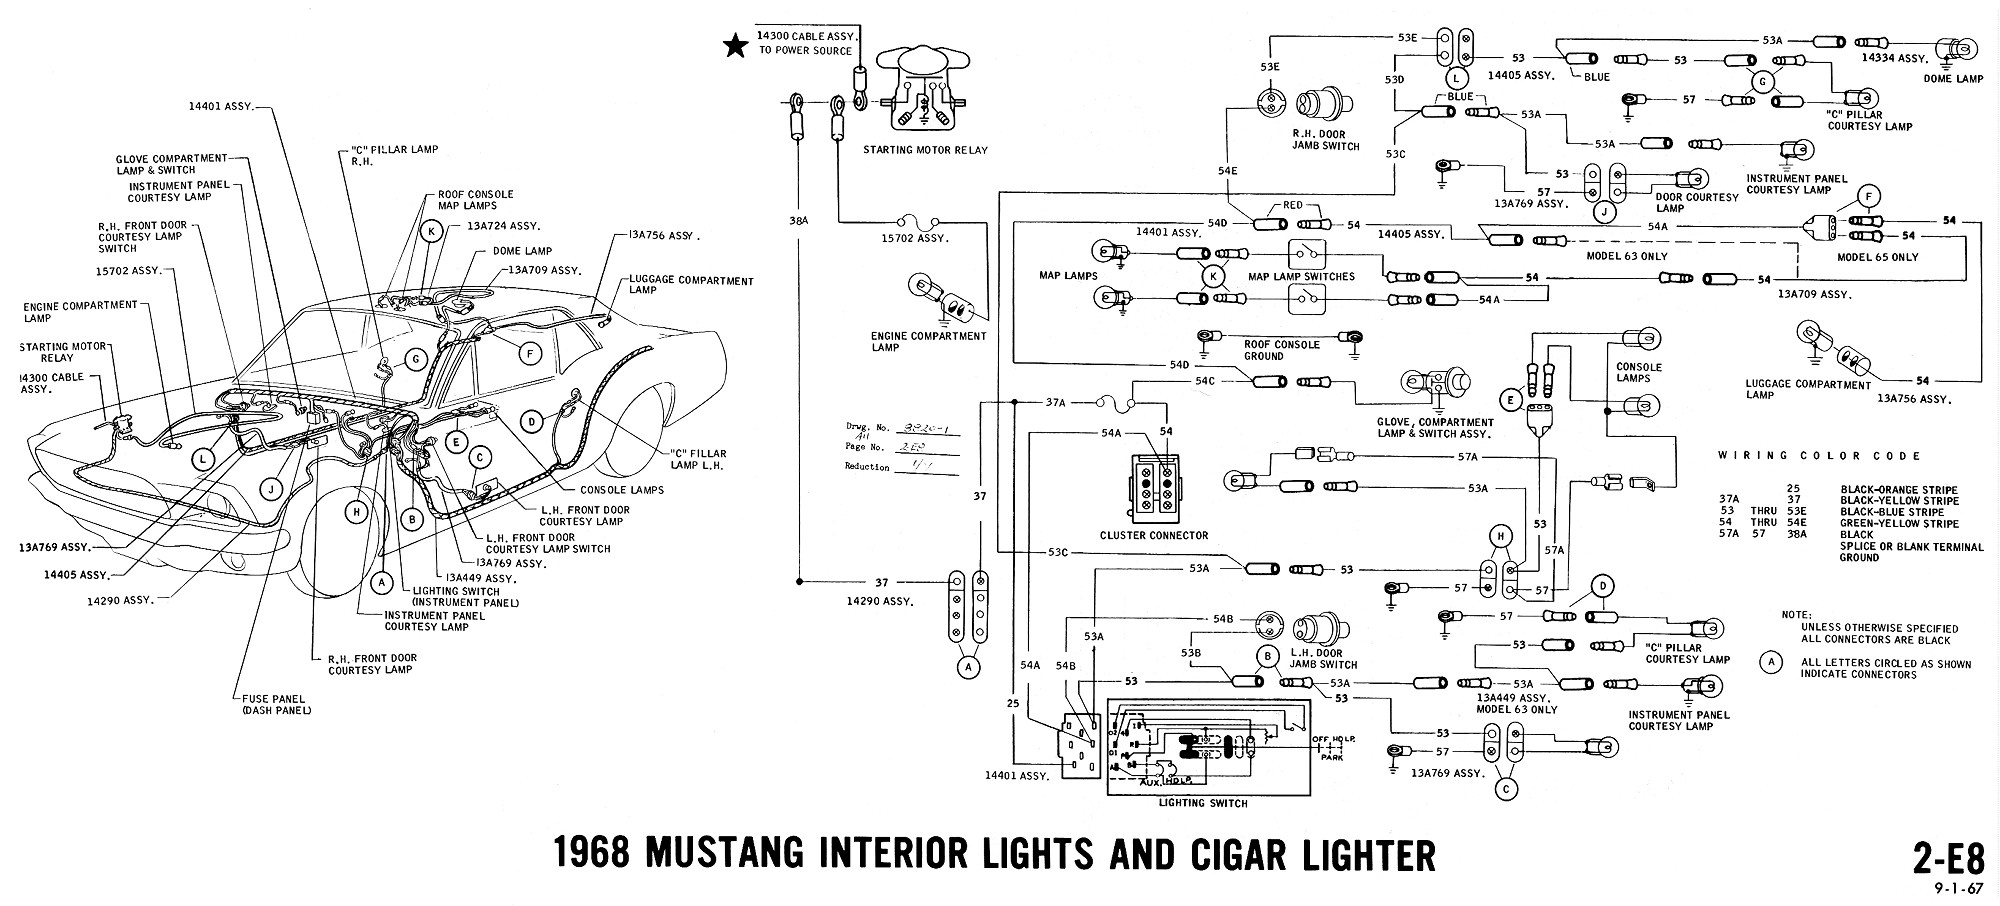 1968 mustang wiring diagram interior lights cigar lighter 1968 mustang wiring diagram 1966 mustang wiring diagrams \u2022 free 1967 mustang ignition wiring diagram at gsmx.co